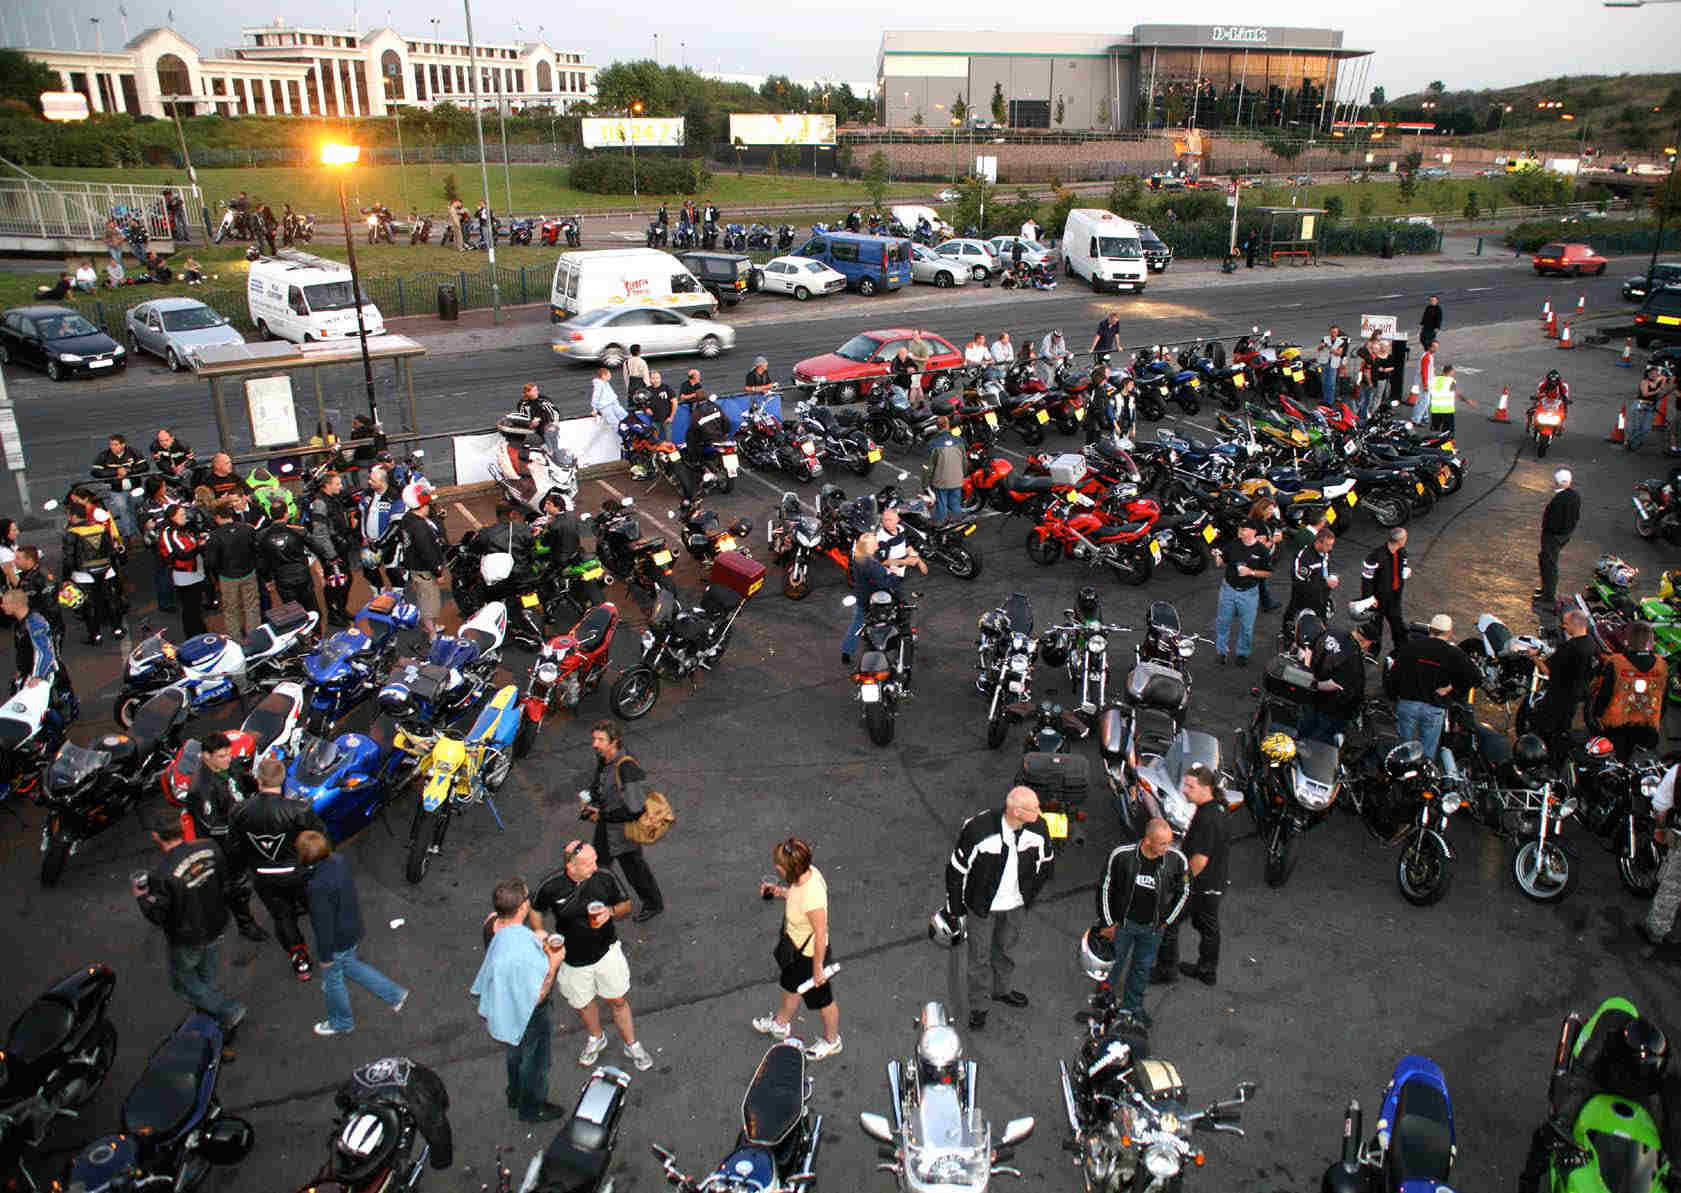 The car park of the Ace, crowded with bikes and strolling pedestrians looking at them.